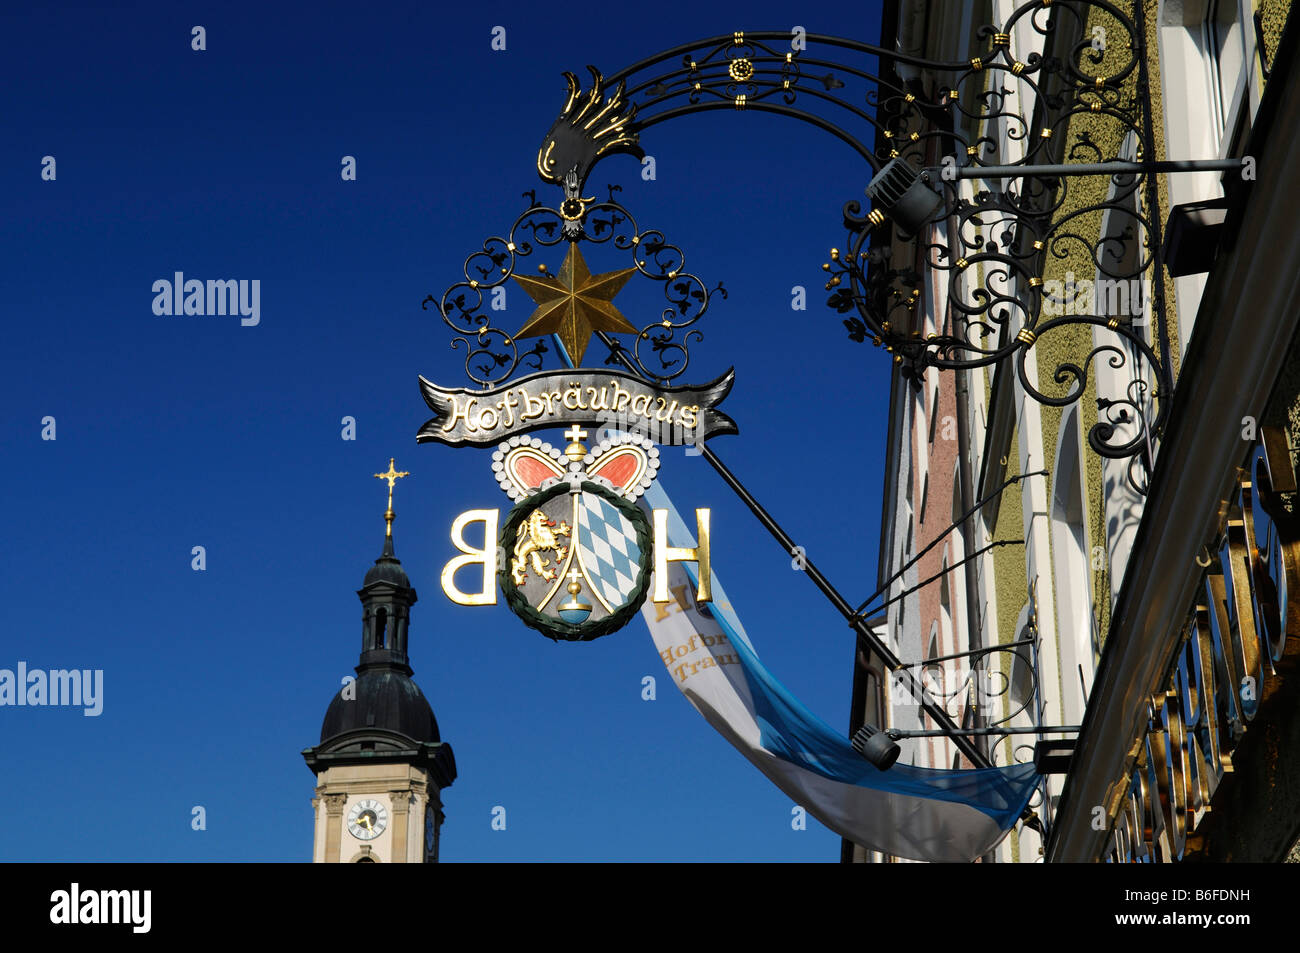 Hofbraeuhaus Brewery shop-front sign, Traunstein town square, Chiemgau, Bavaria, Germany, Europe - Stock Image